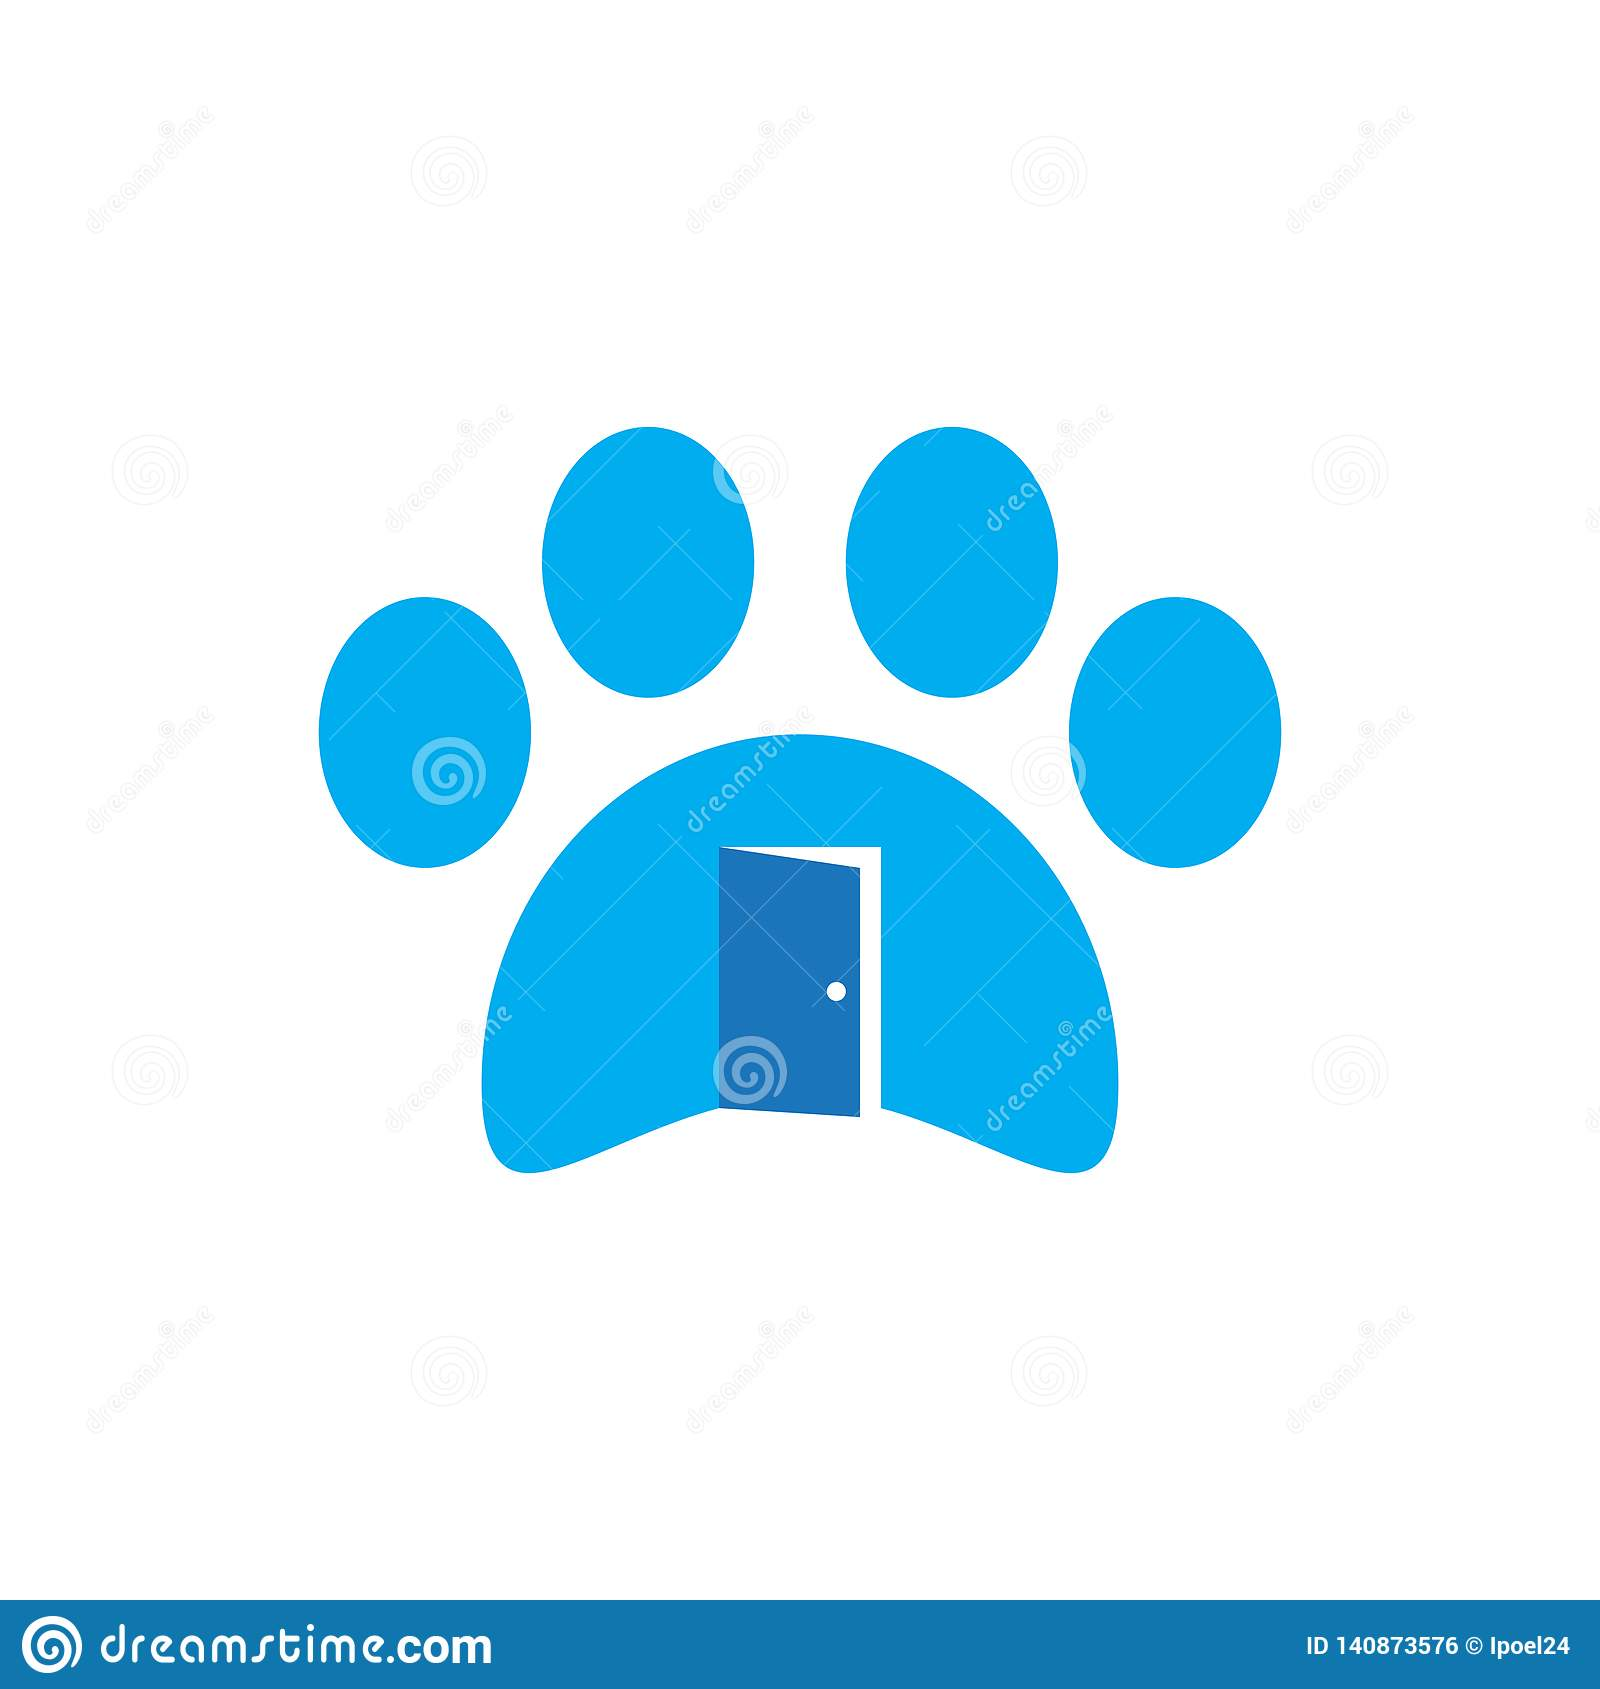 hight resolution of business icon symbol animal house dog logo cat pet vector sign design illustration shop store concept veterinary home care paw